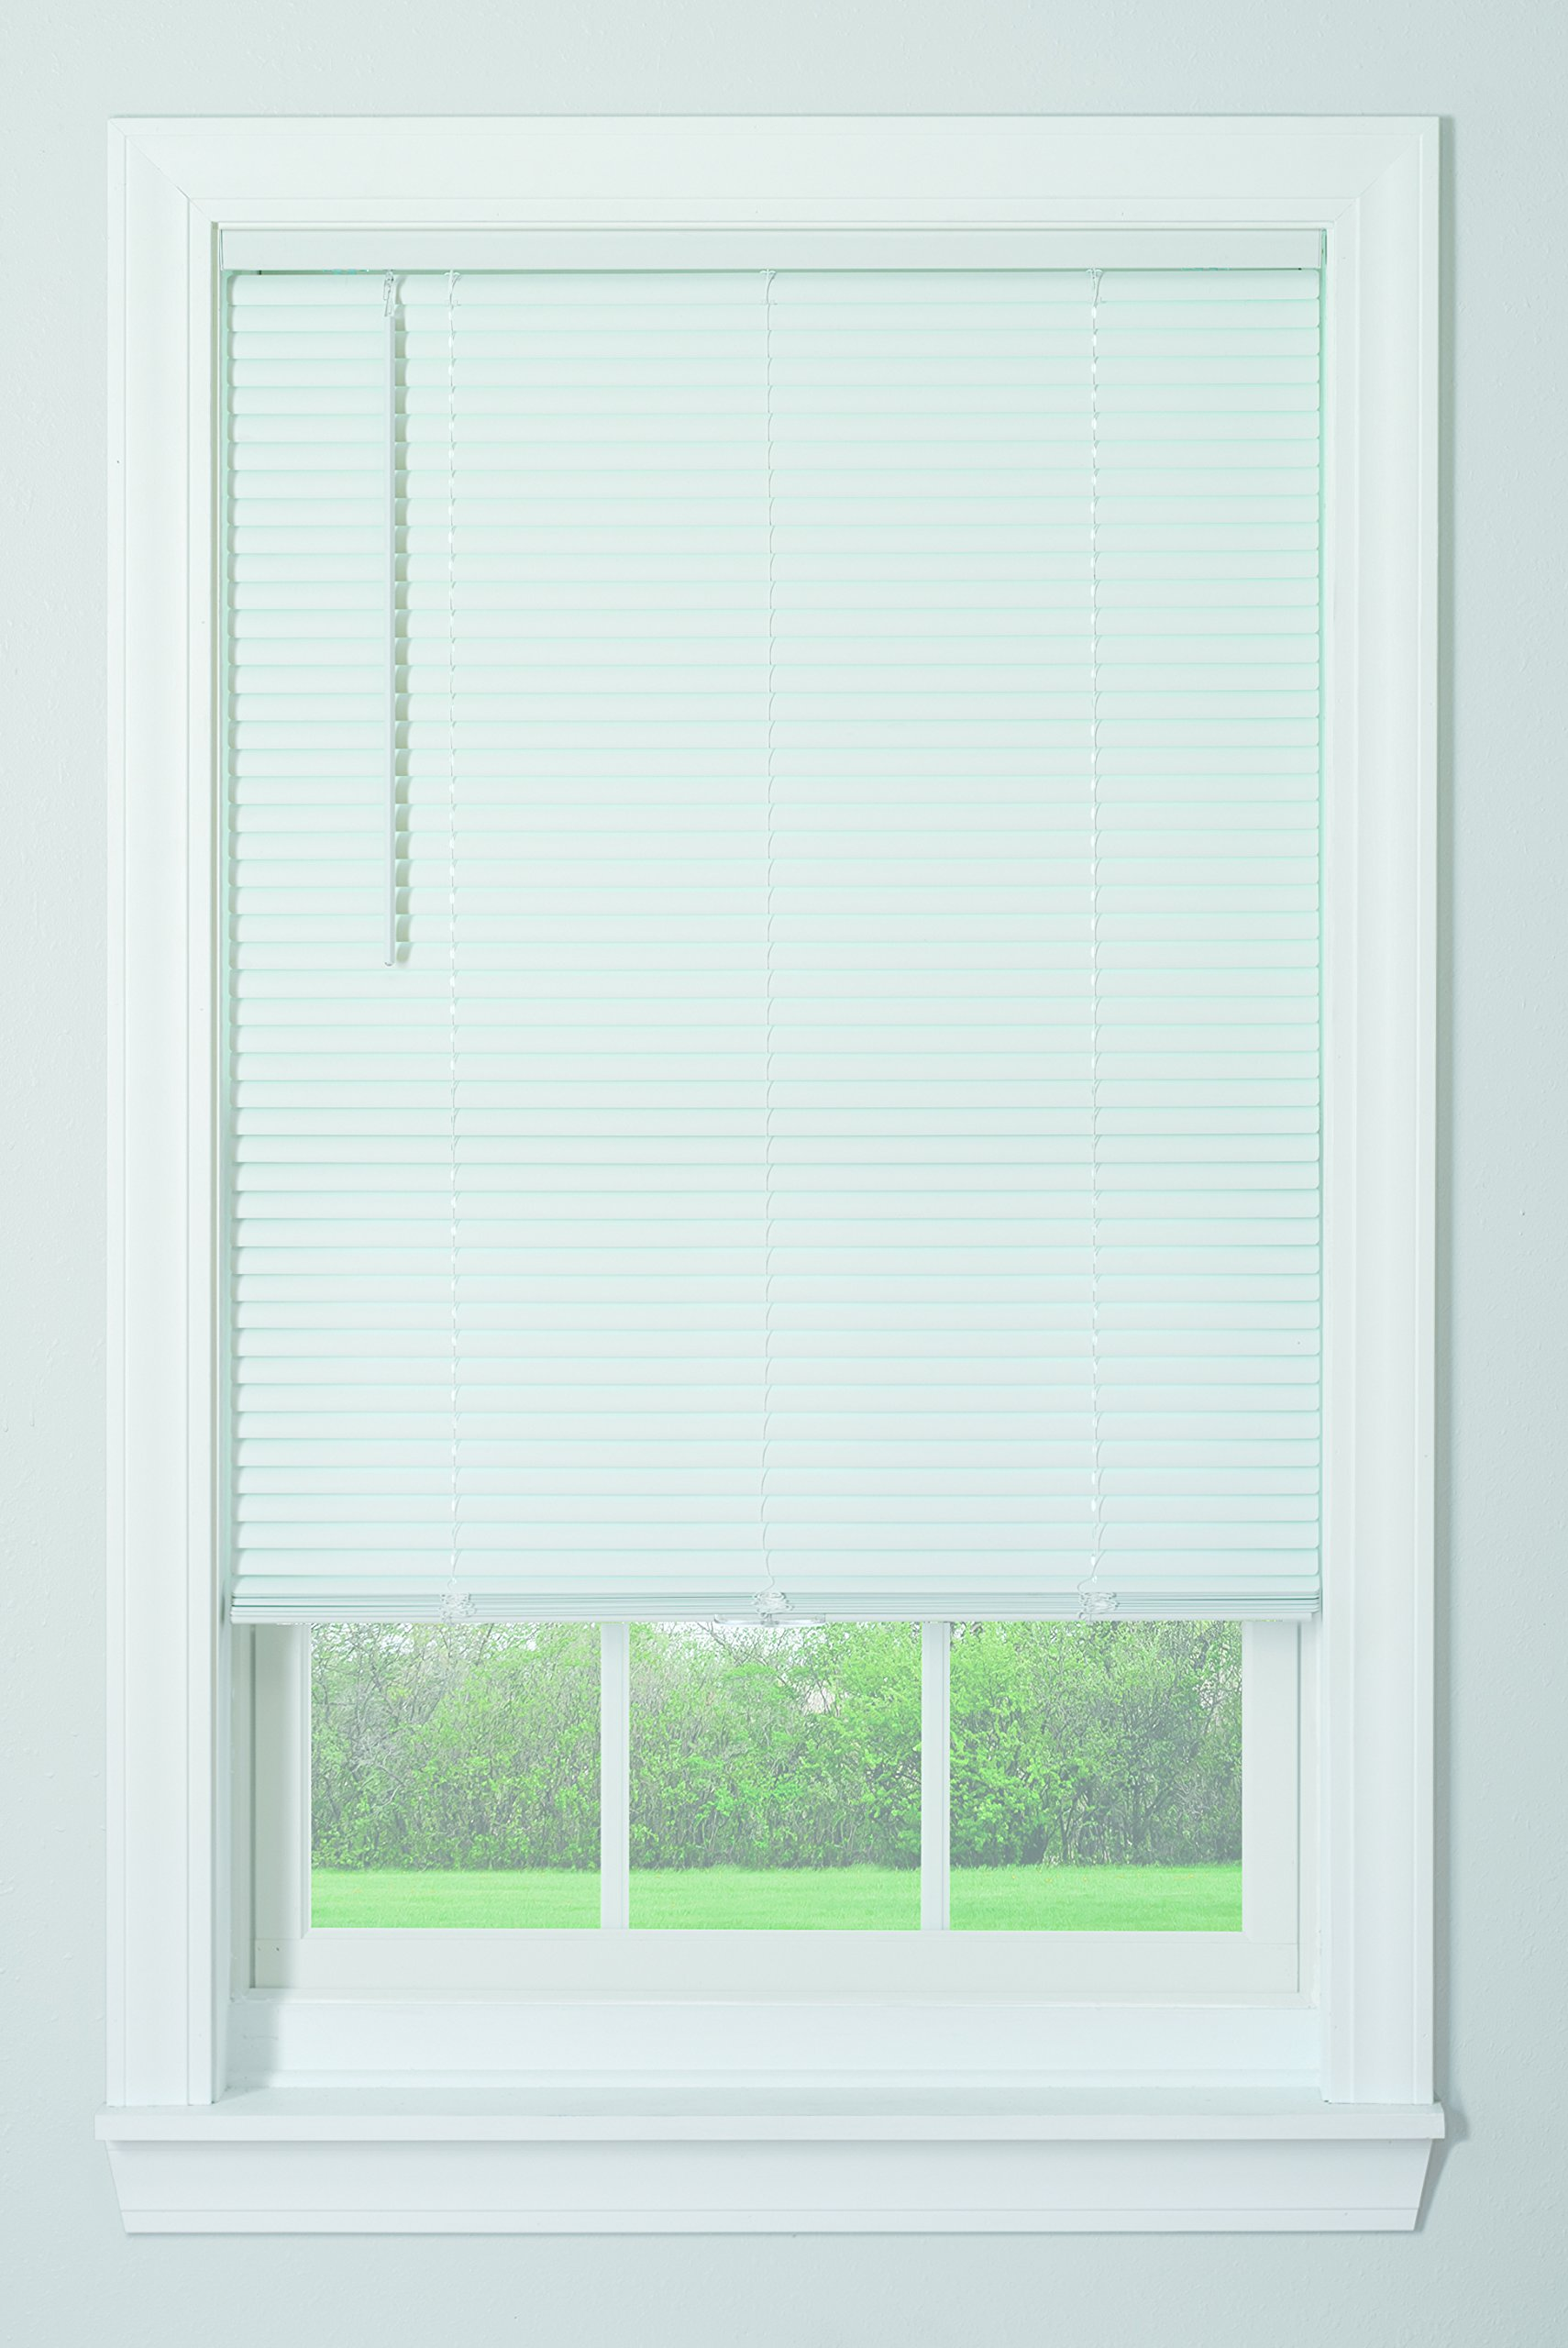 Bali Blinds 1'' Vinyl Cordless Blind, 35'' x 64'', White by Bali Blinds